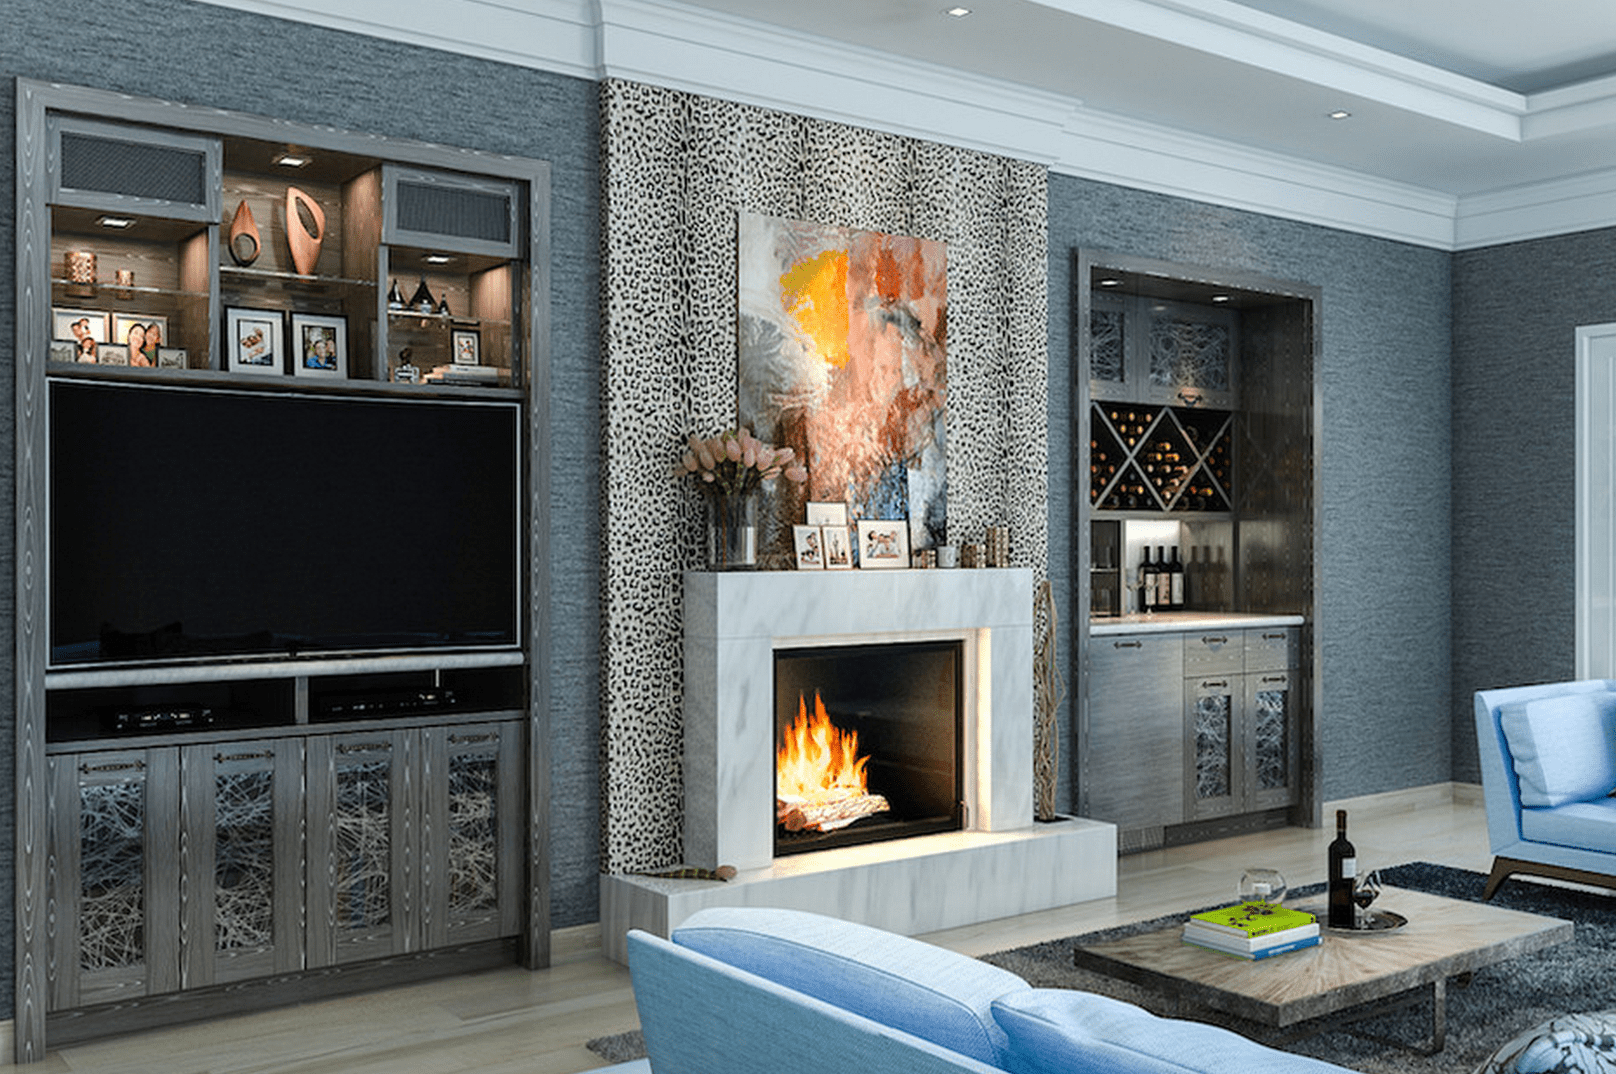 Living Room Decorating Ideas With Entertainment Center beautiful living rooms with built-in shelving